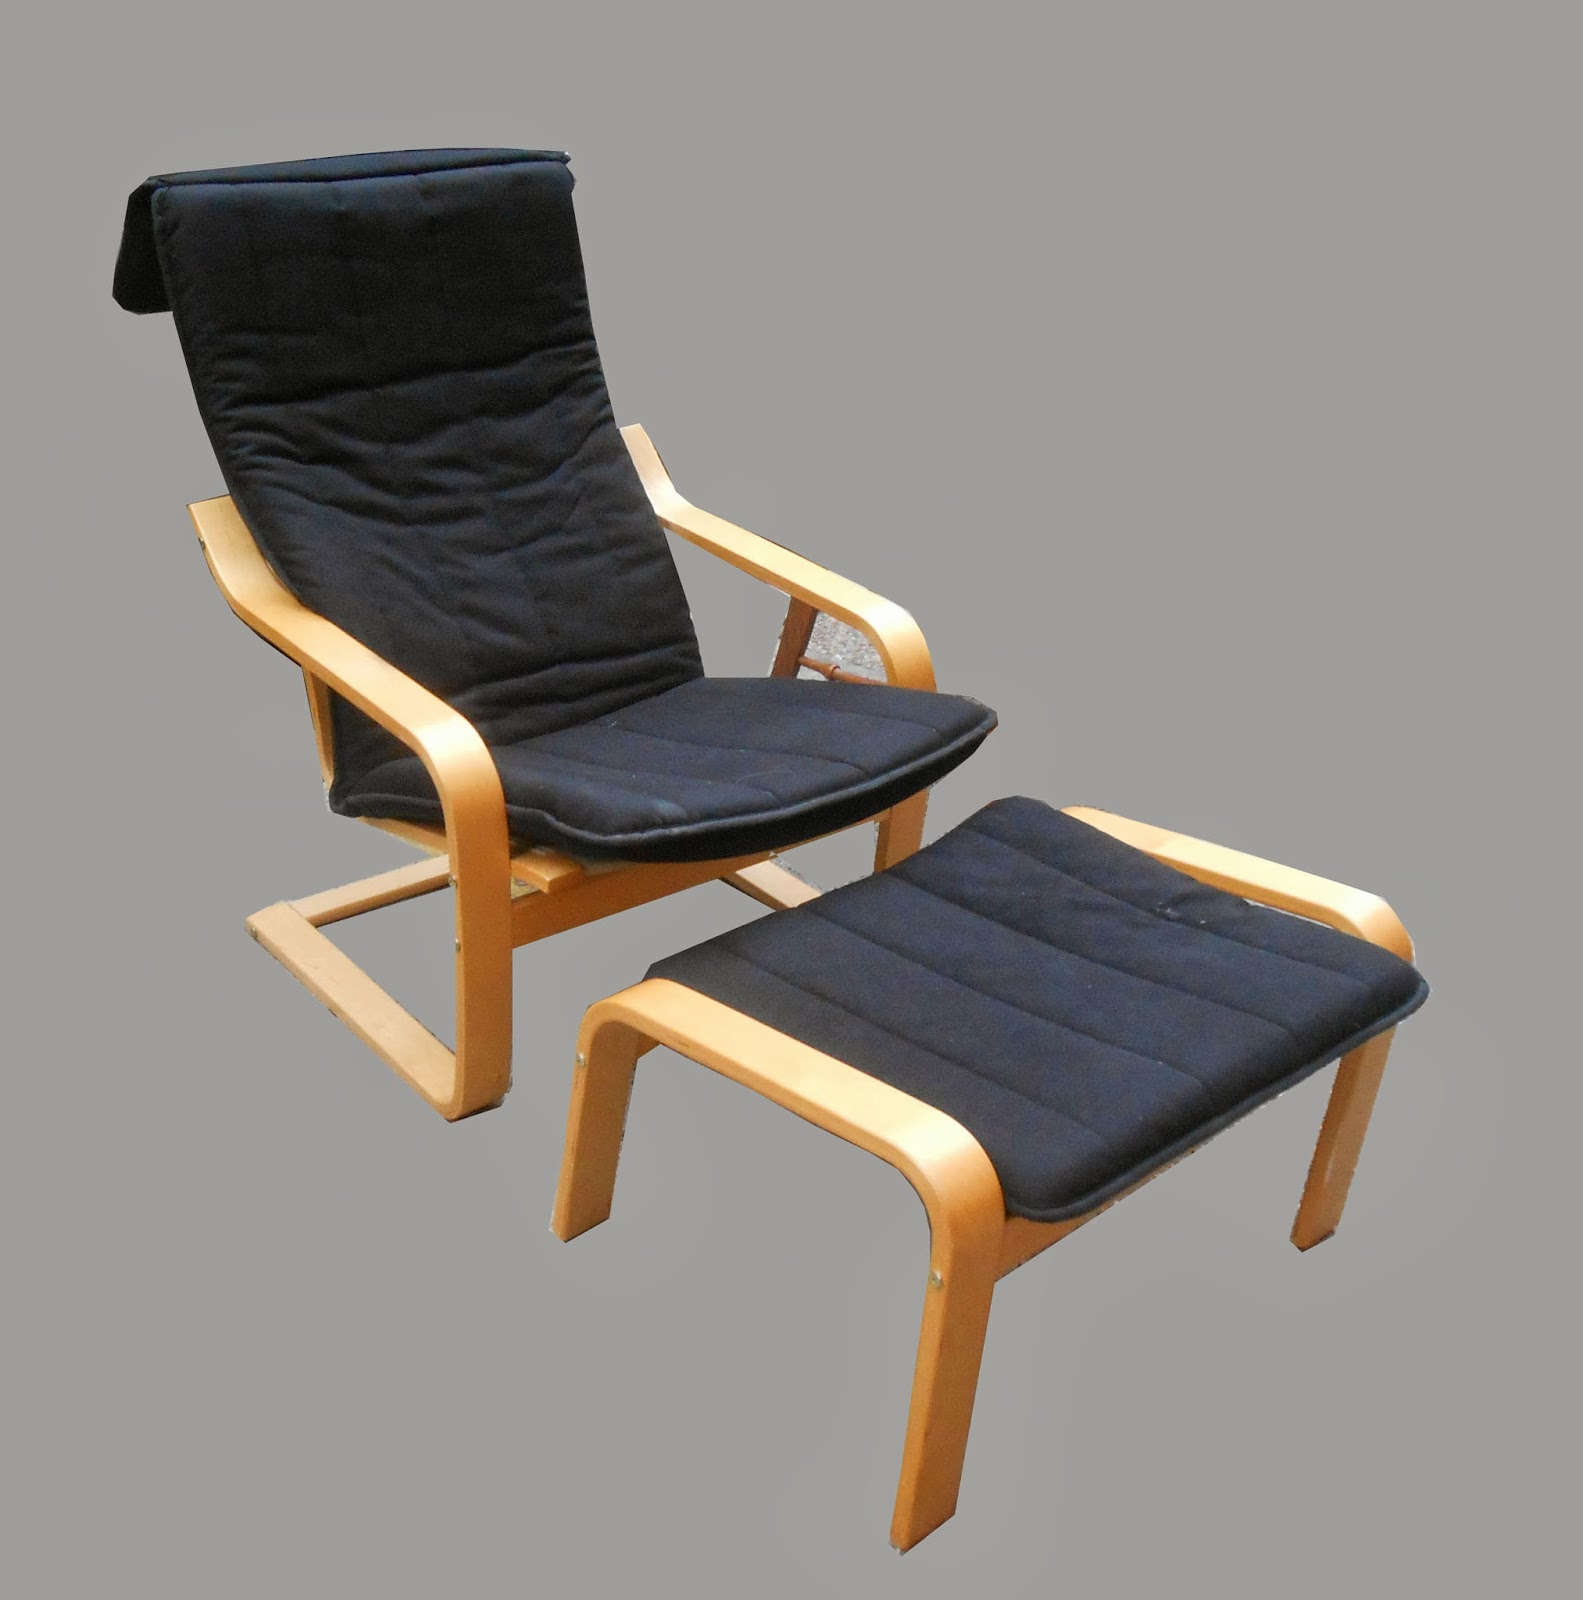 Uhuru Furniture & Collectibles: Ikea Poang Lounge Chair